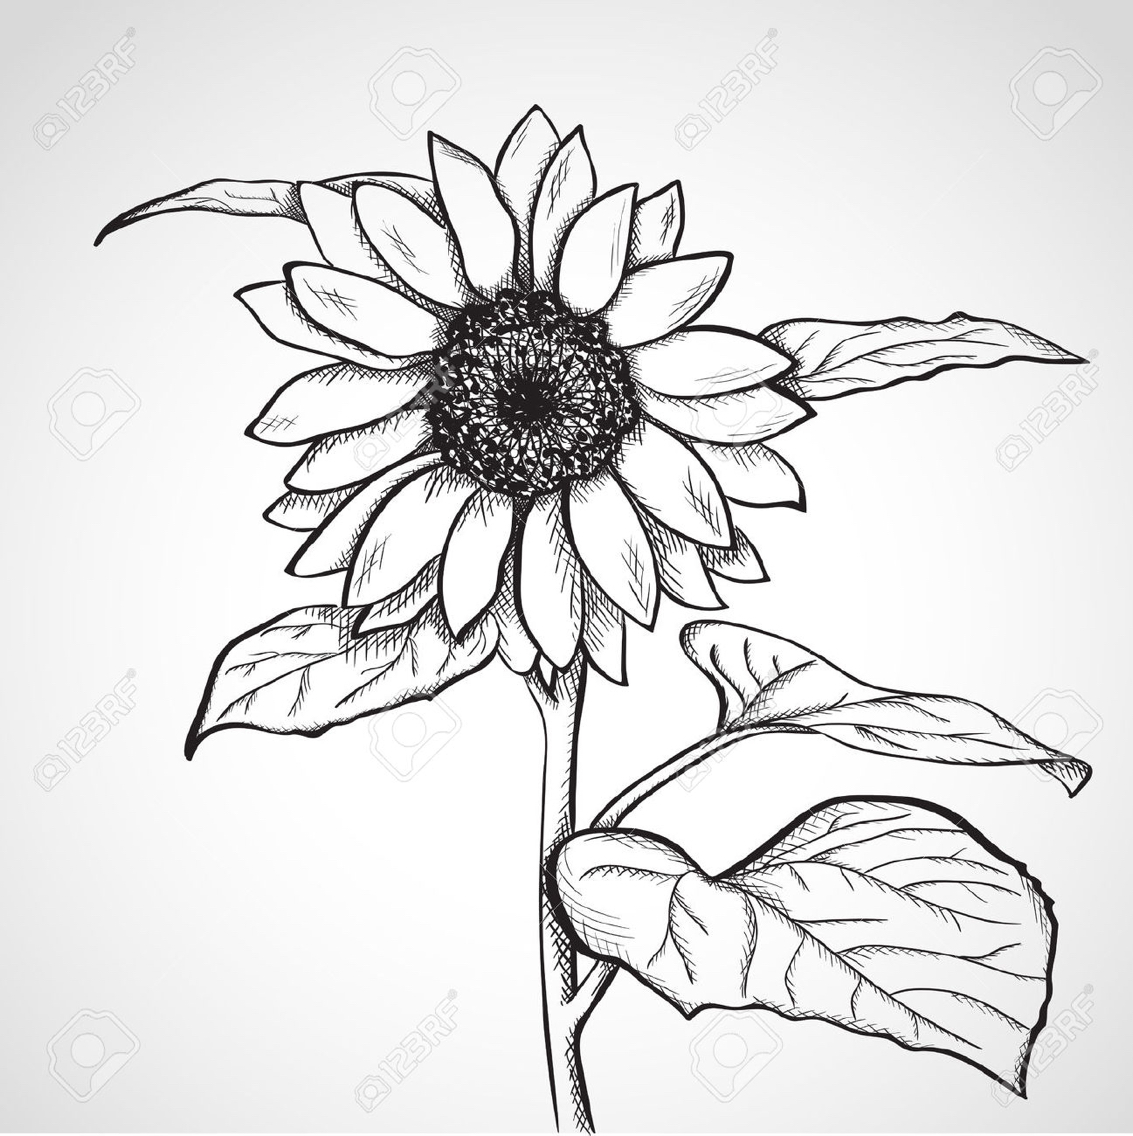 1133x1136 Sunflower Sketch Black And White